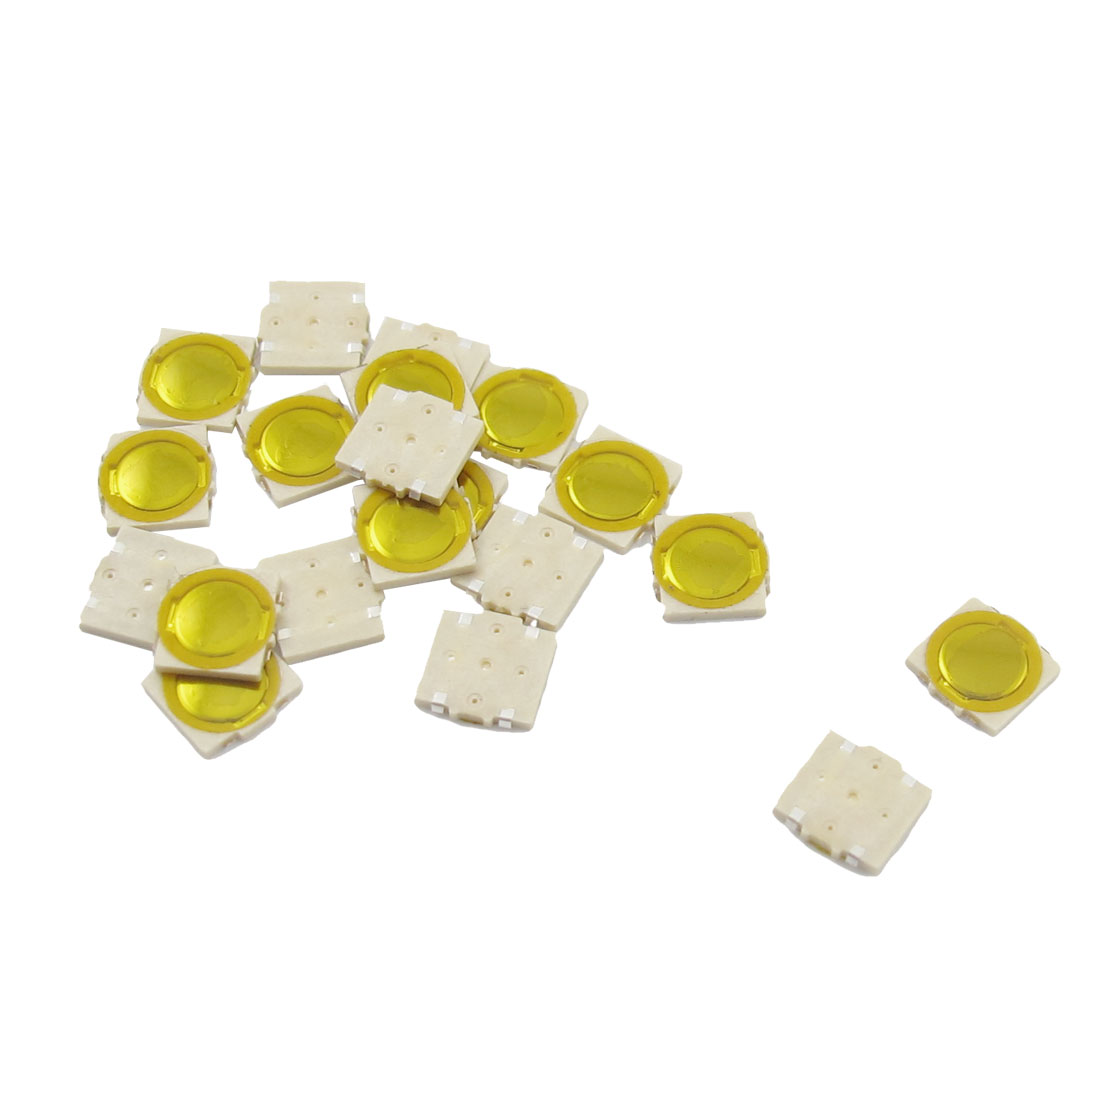 20 Pcs Momentary Tact Switch SMT SMD Ultrathin Tactile Switches 5x5mm